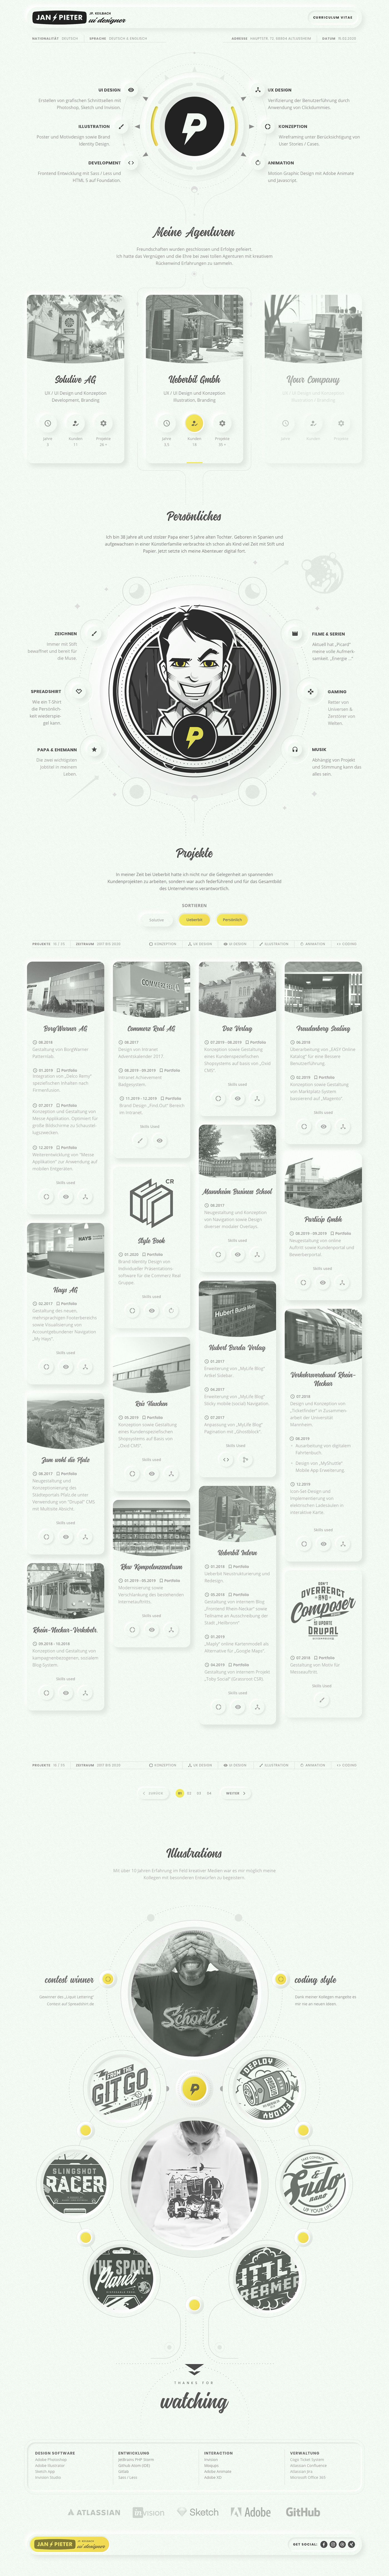 Pin On Creative Resumes Personal Branding